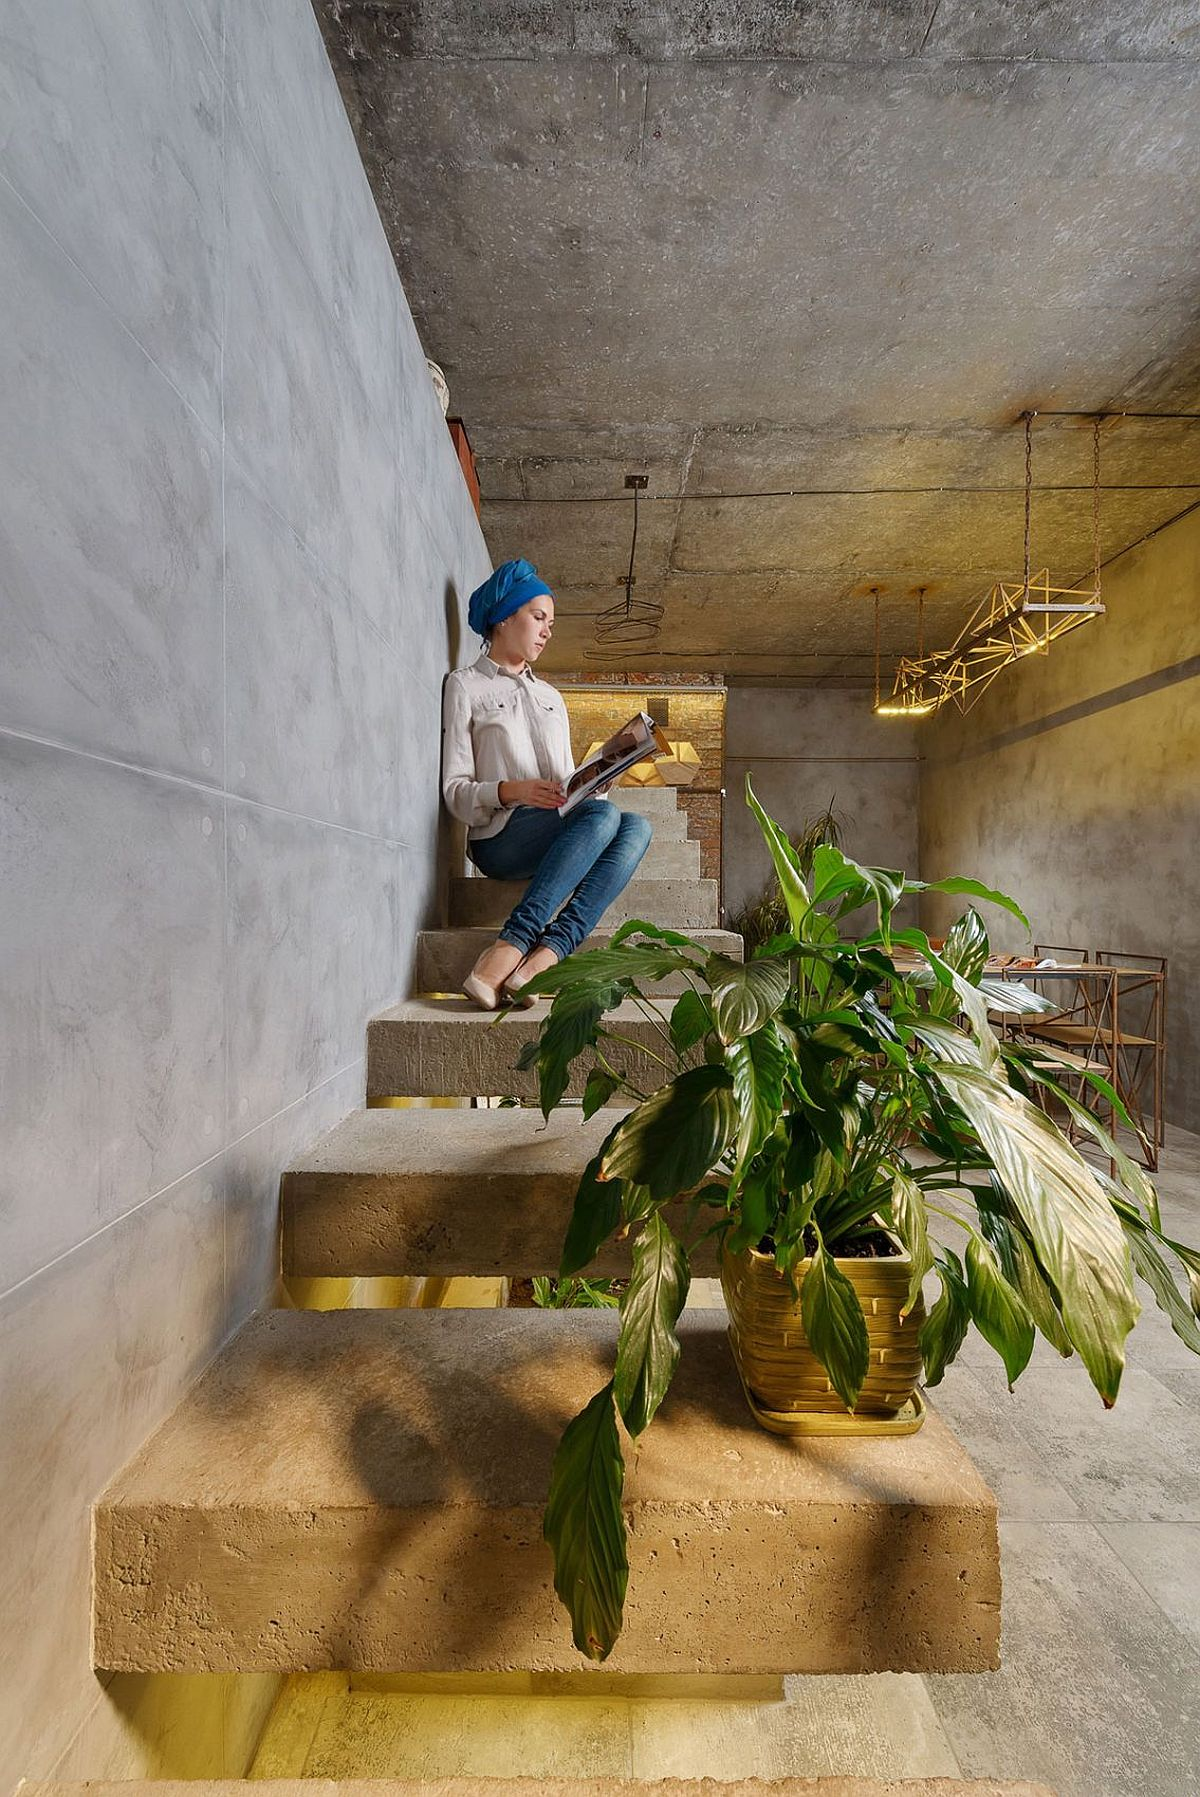 Concrete staircase in the living room becomes an aesthetic addition